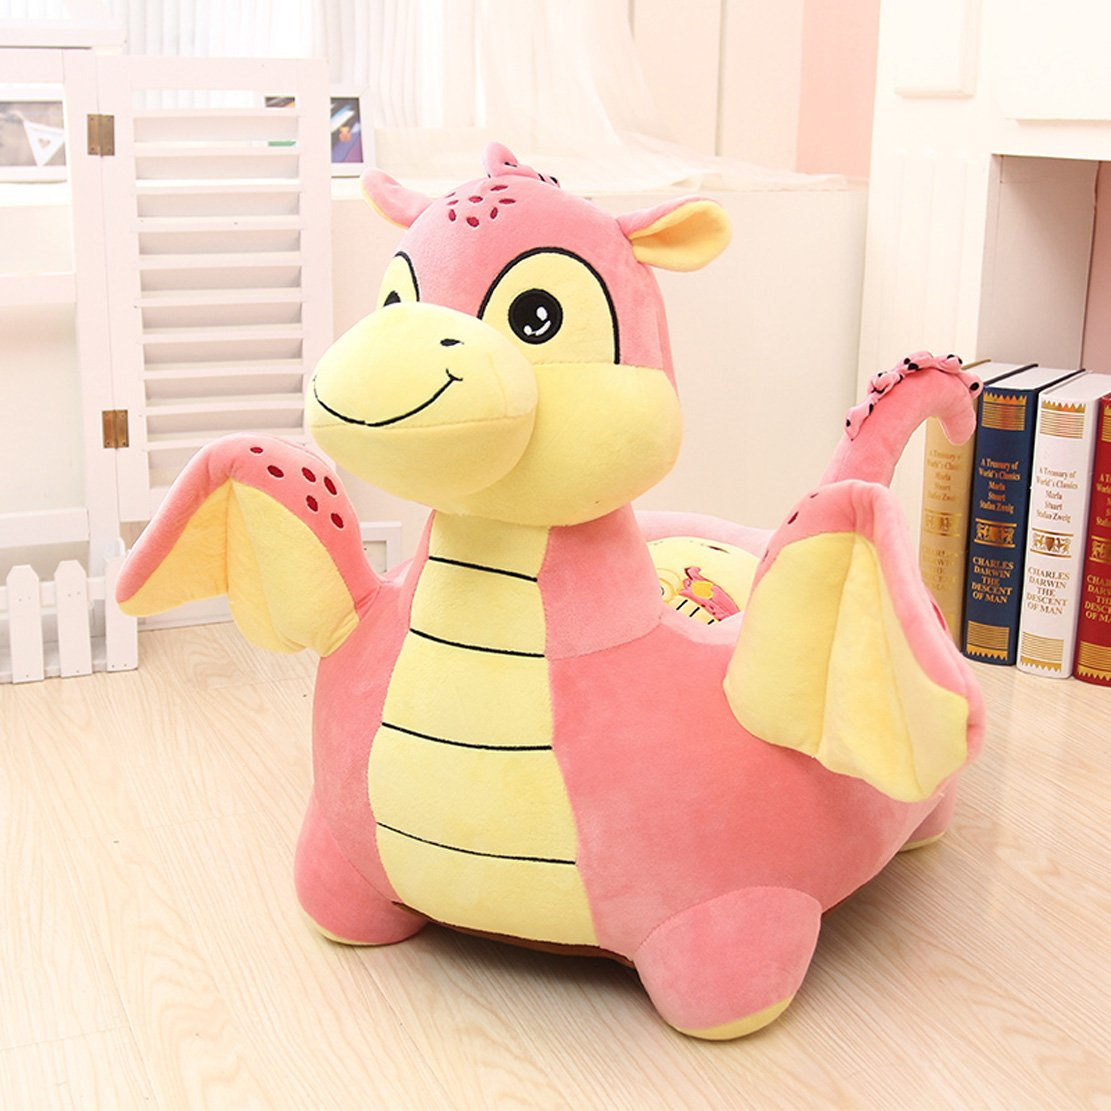 Beautiful Amazon.com: MAXYOYO Kids Plush Riding Toys Bean Bag Chair Seat For Children,Cartoon  Cute Animal Plush Sofa Seat,Soft Tatami Chairs,Birthday Gifts For Boys ...